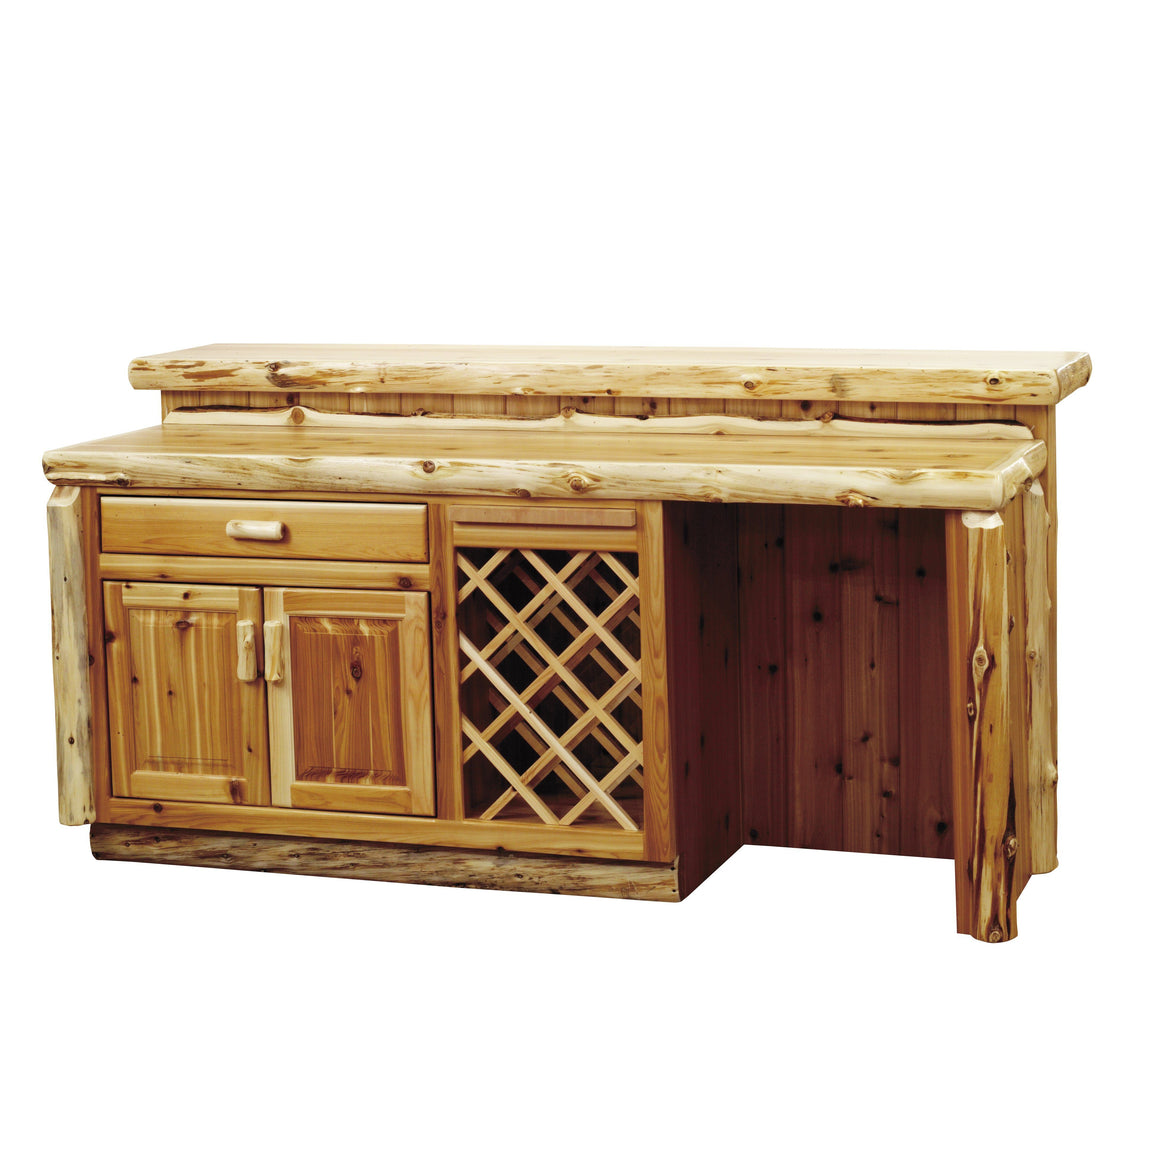 Natural Cedar 7 Foot Log Home Bar with Sink Cabinet Bar Fireside Lodge Liquid Glass Finish Refrigerator Opening on Right